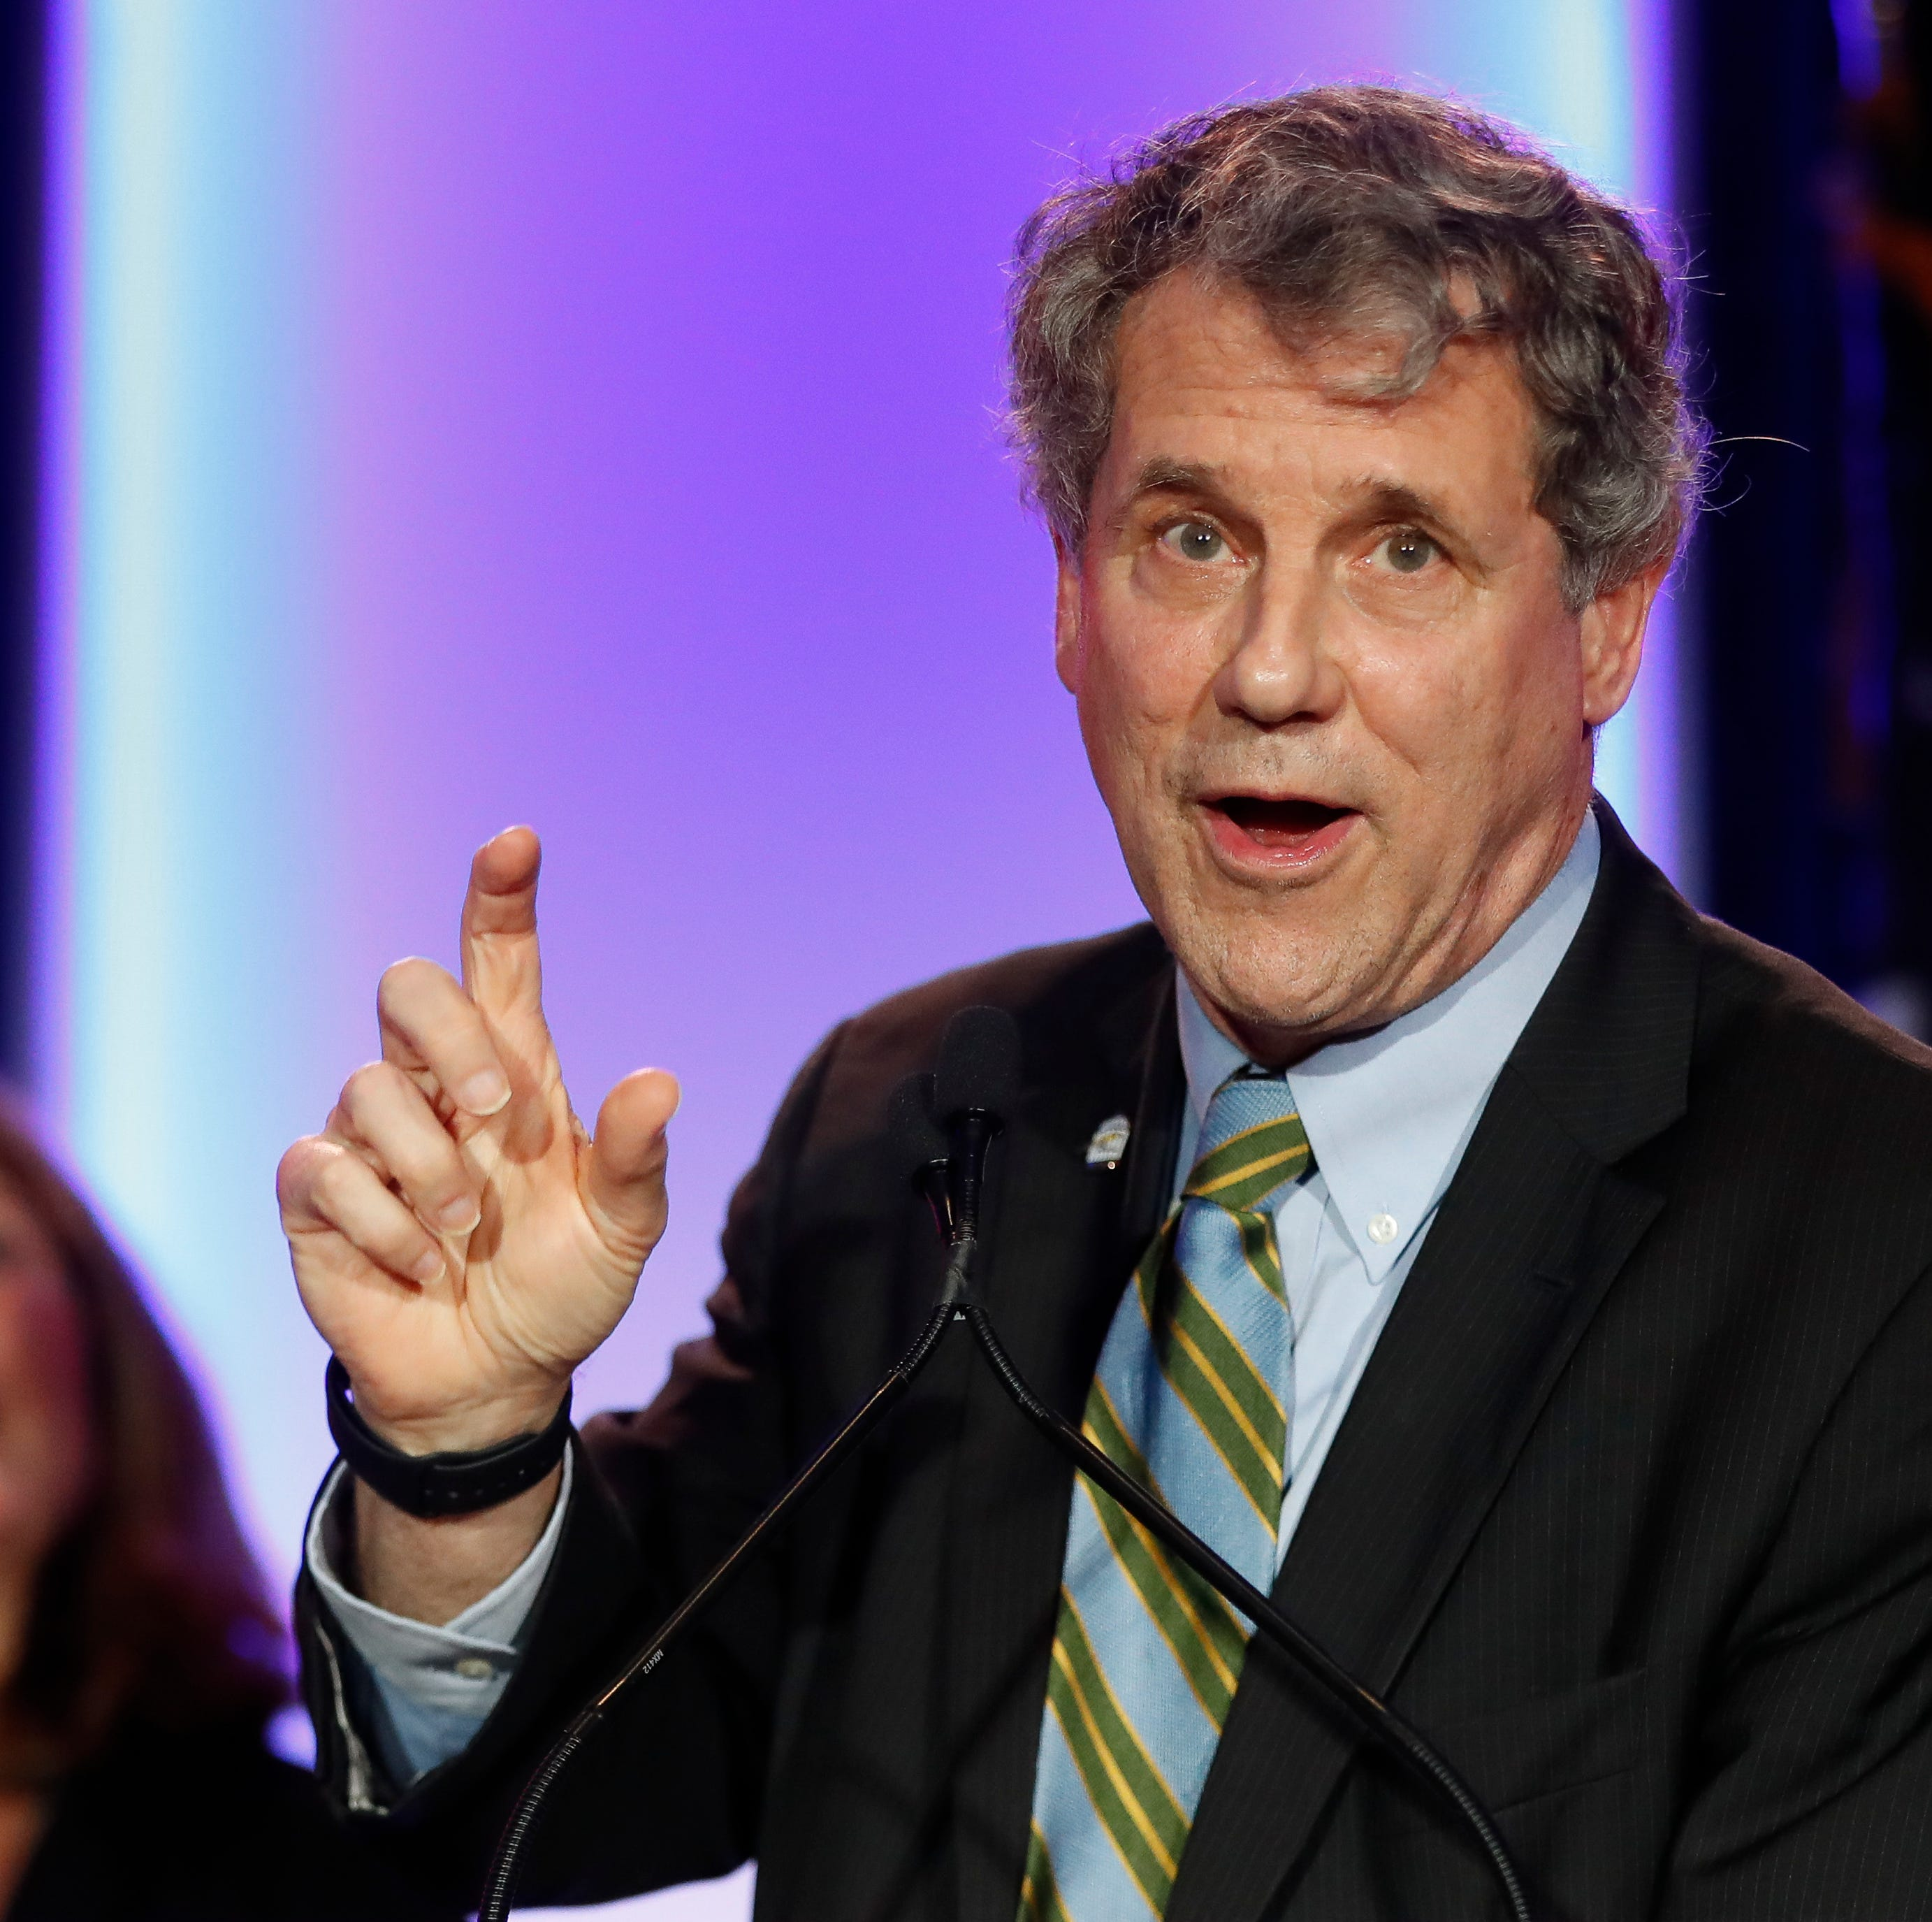 2020 presidential election: Ohio Sen. Sherrod Brown considering a run